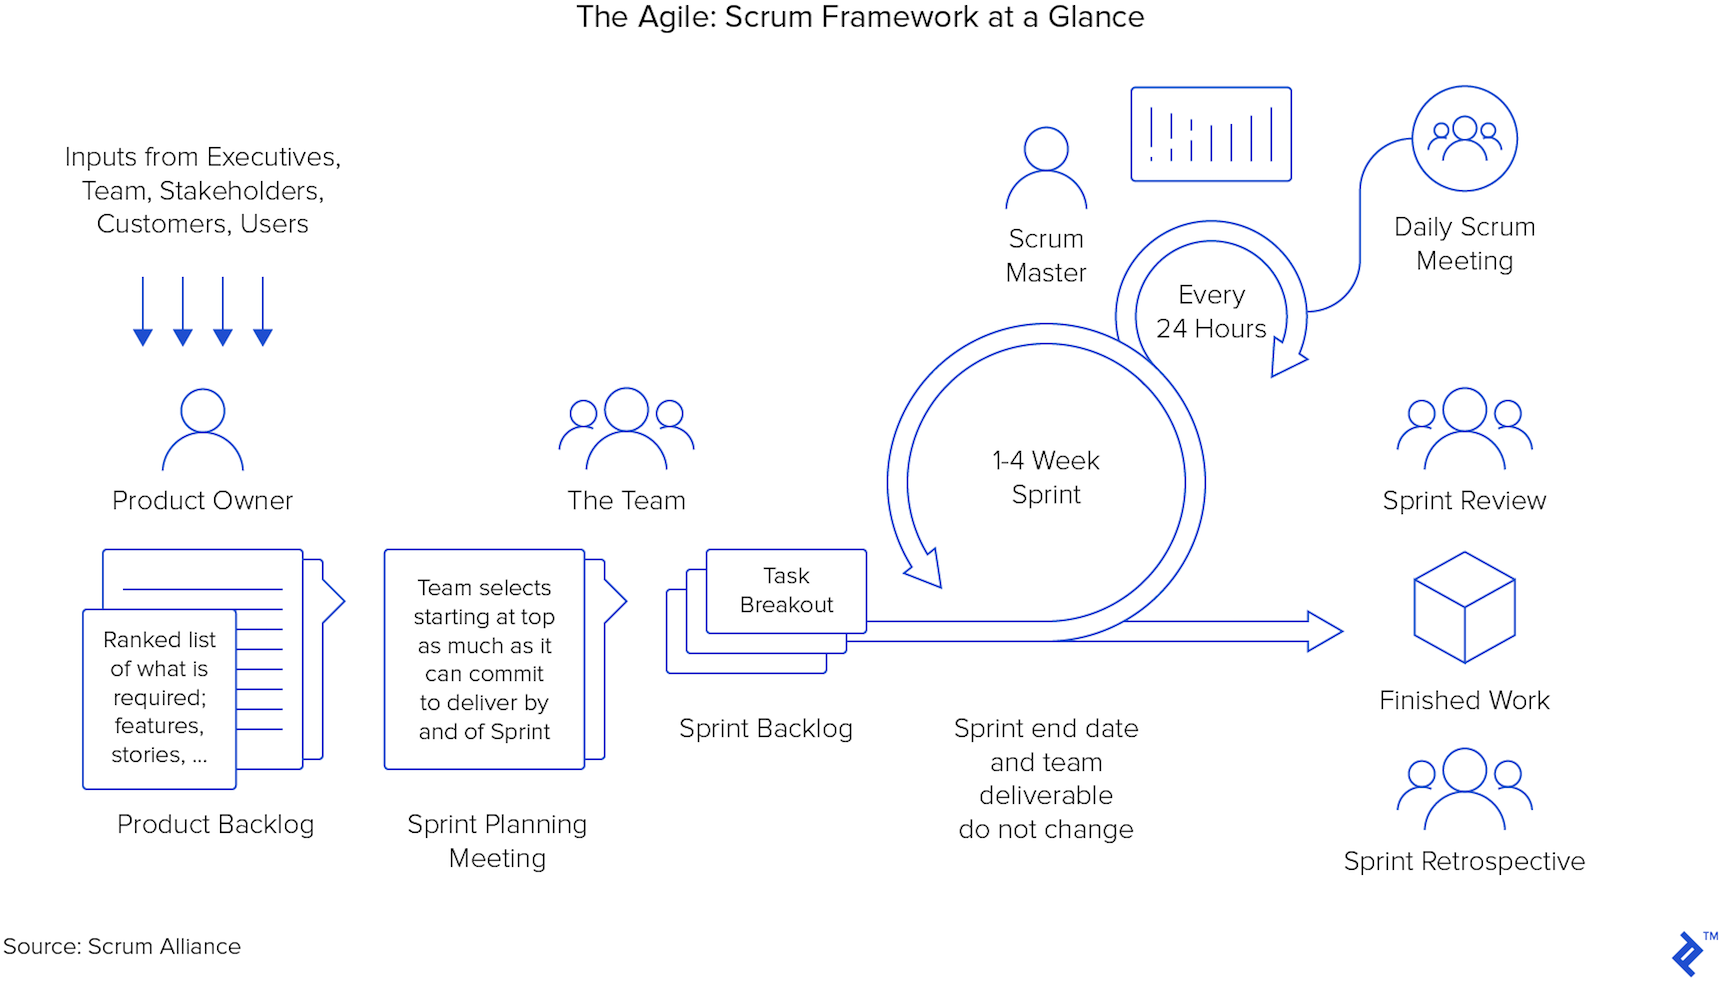 hight resolution of diagram of the scrum framework at a glance